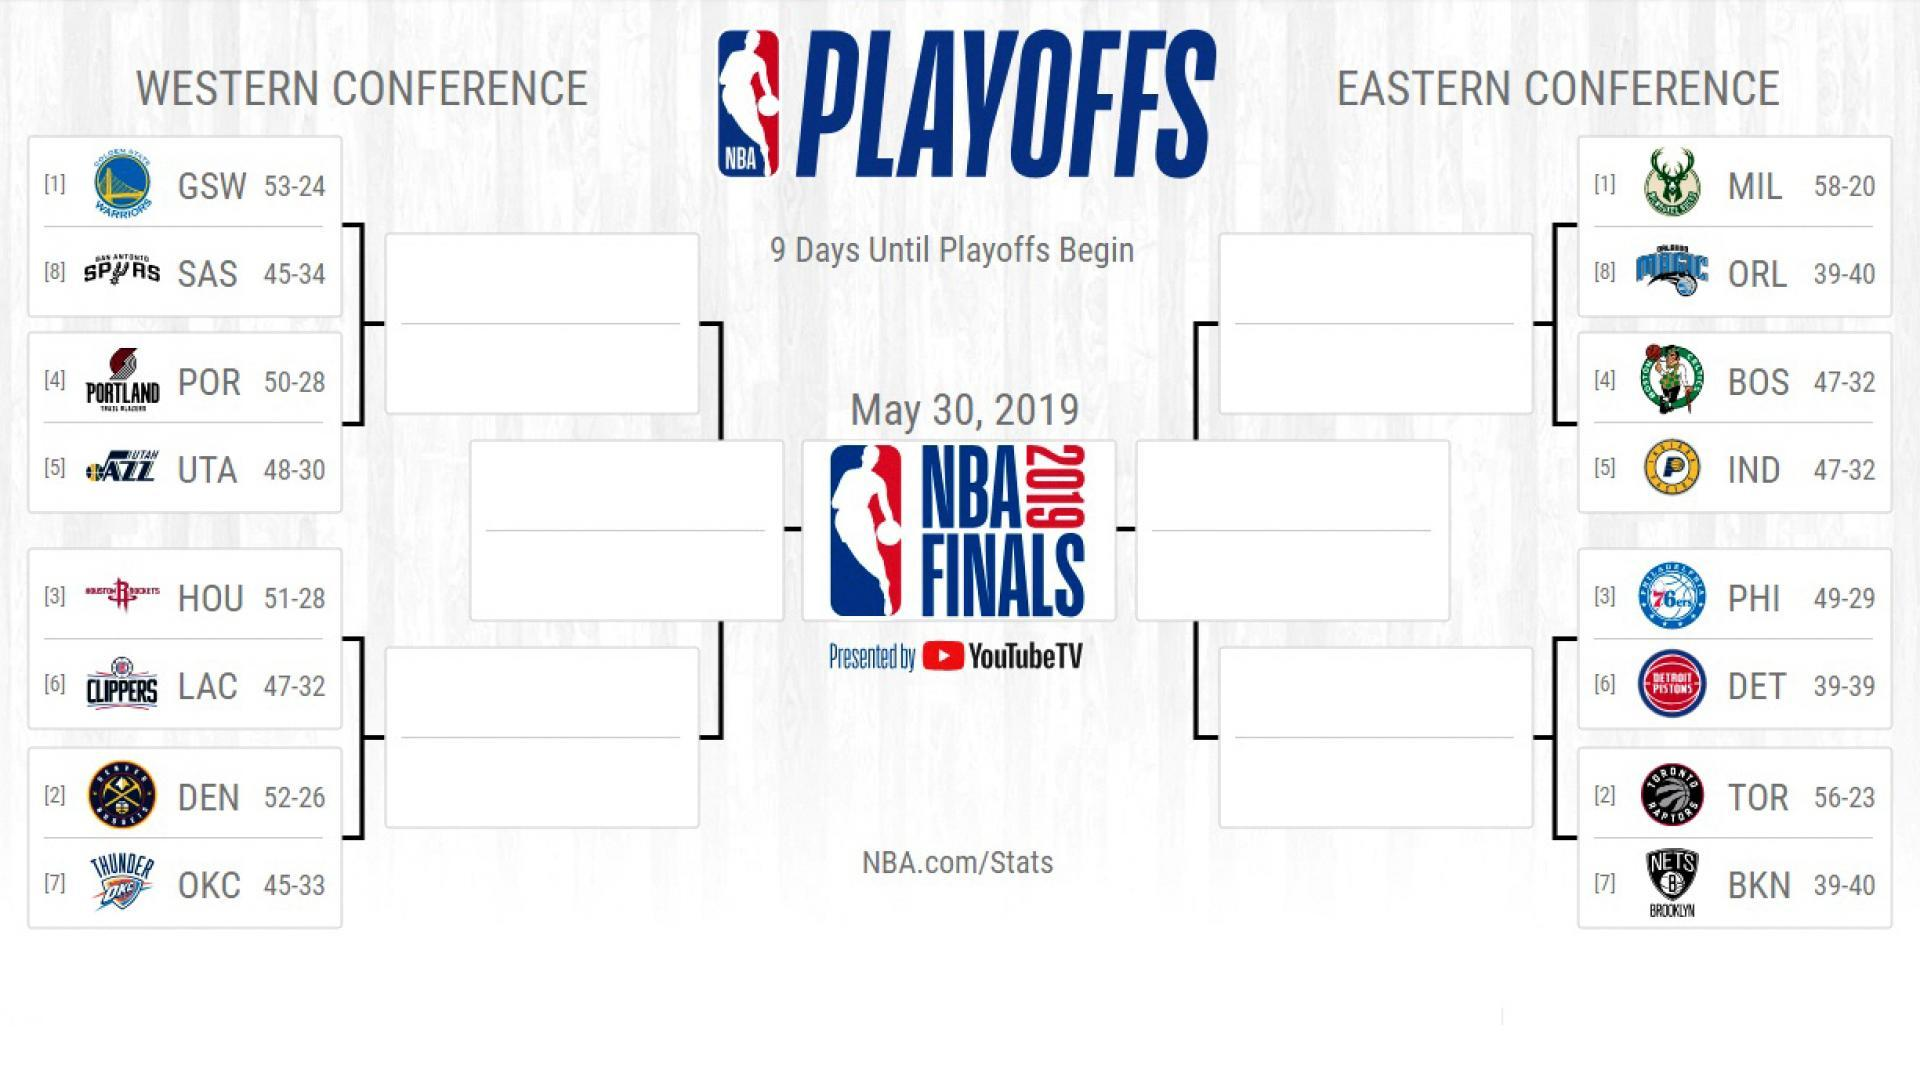 About Last Night Magic Jump Rungs On The Playoff Ladder Nba Com